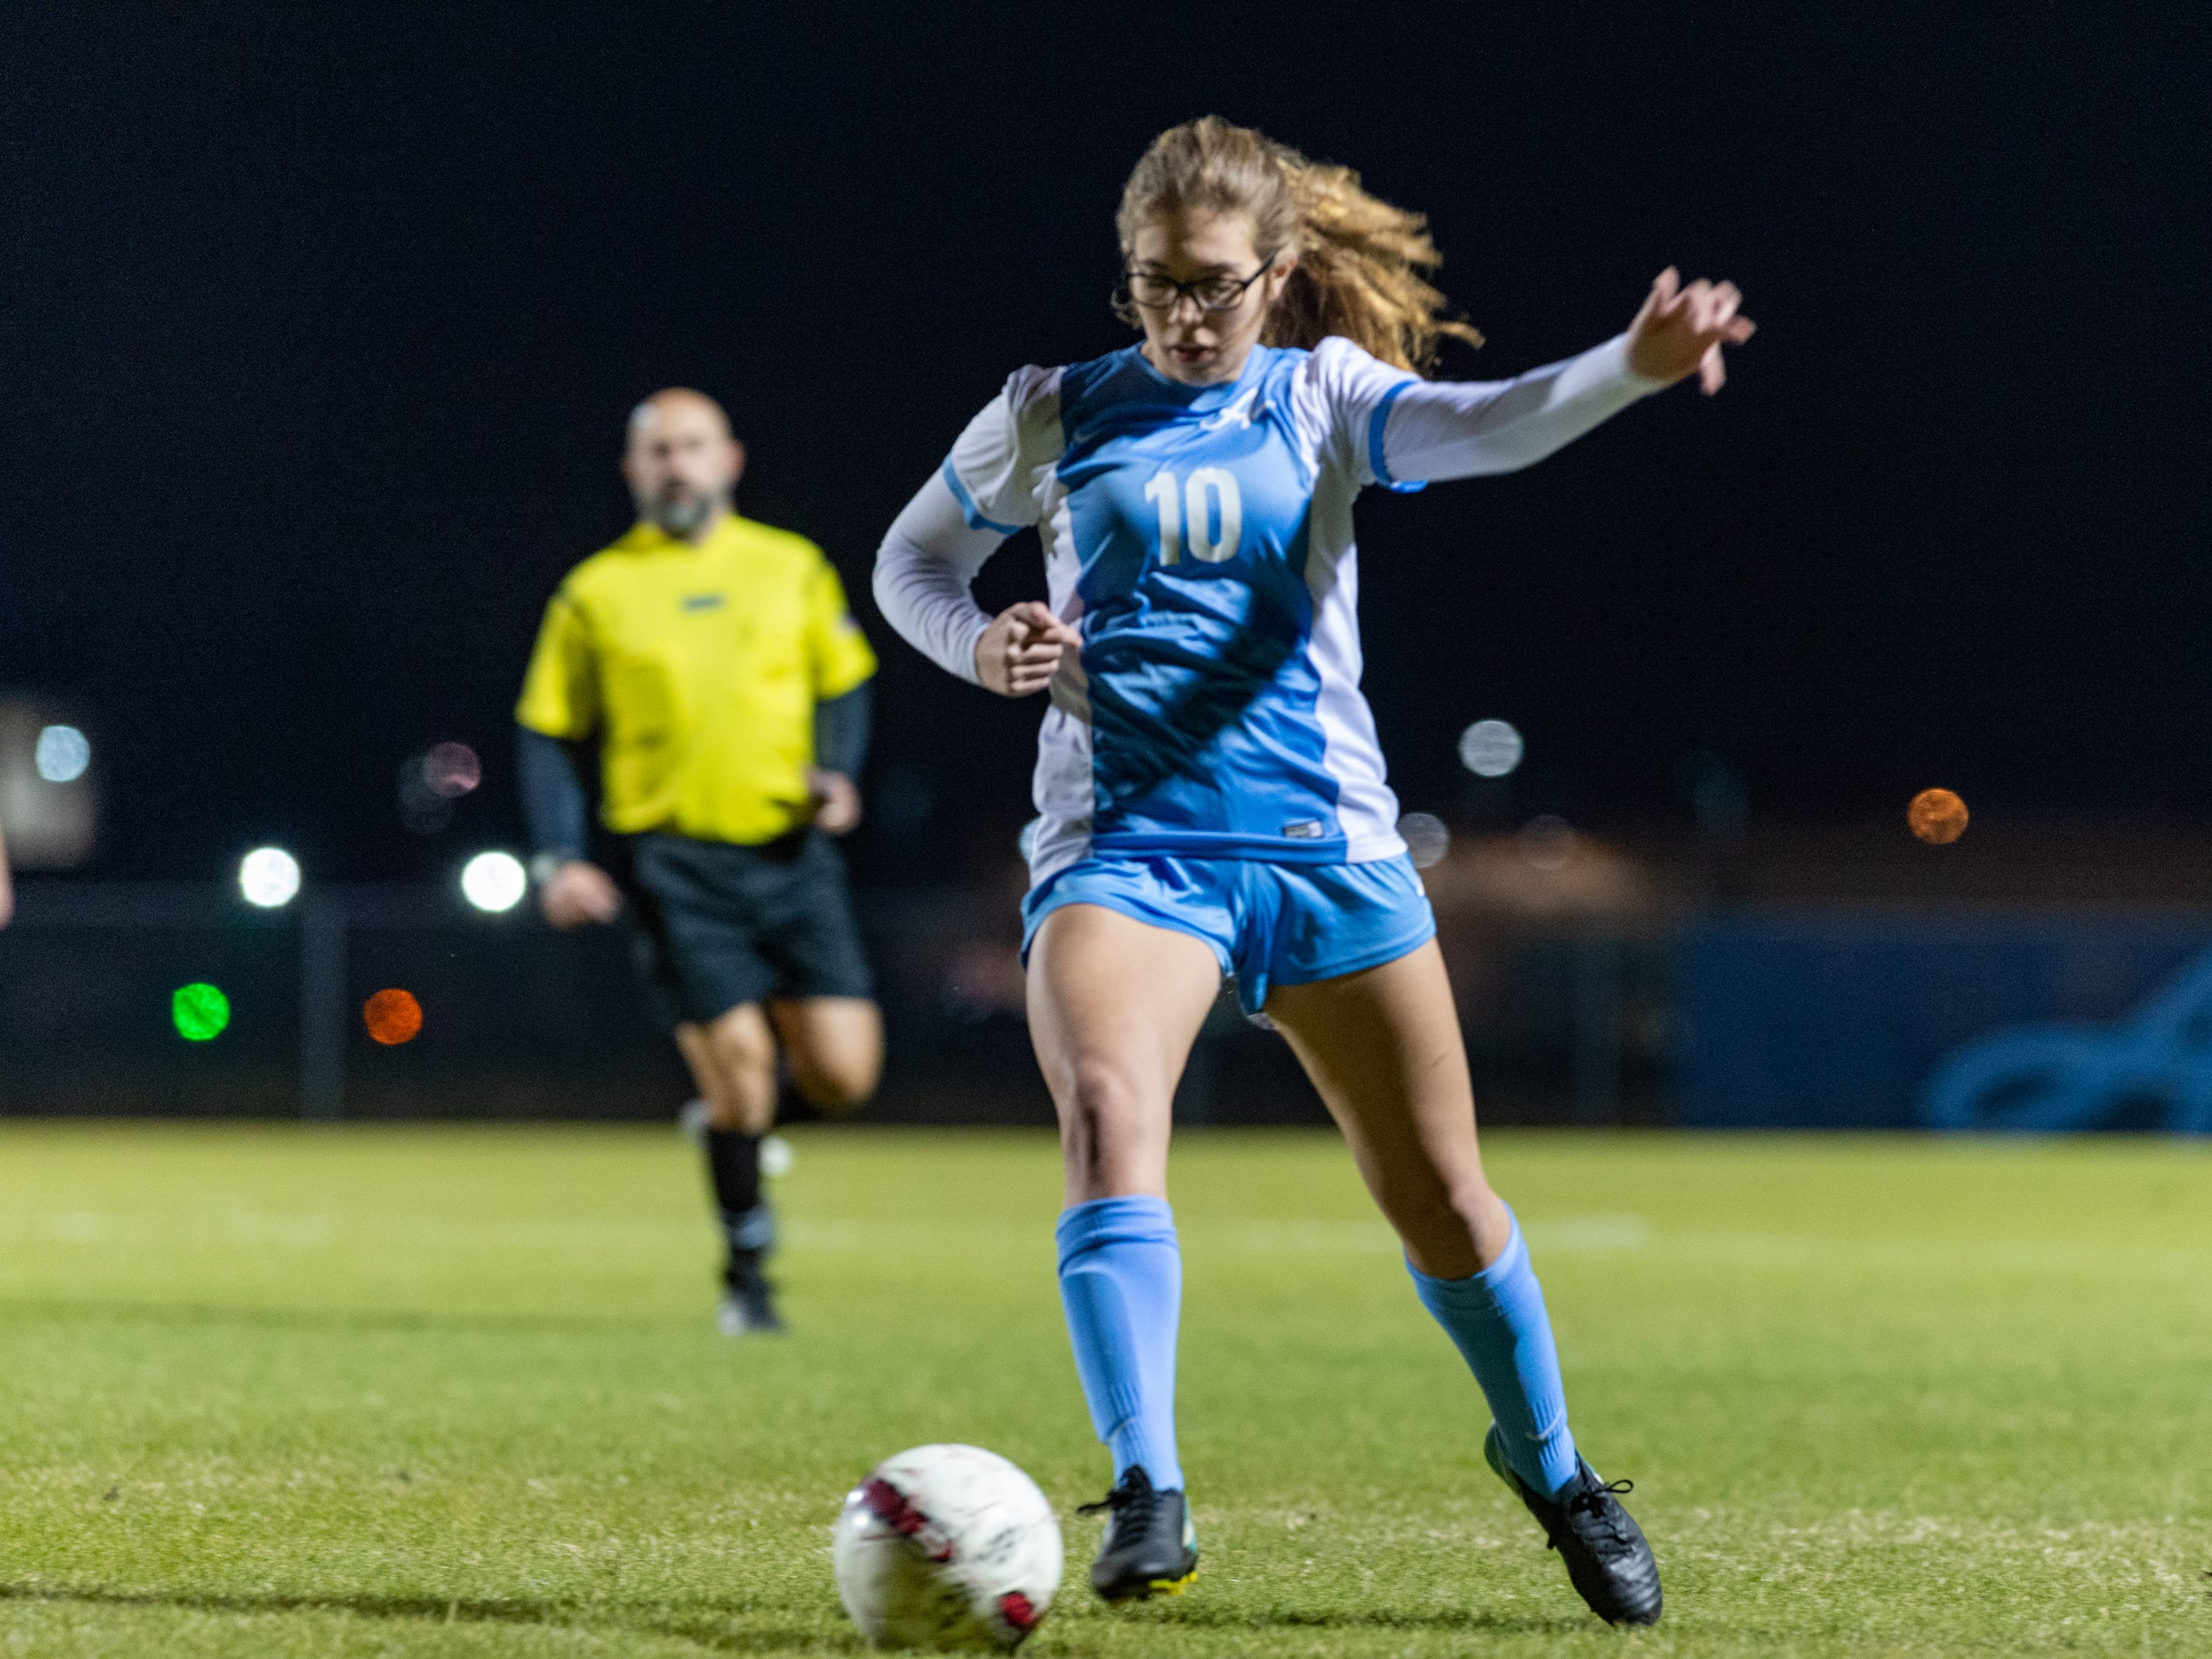 Olivia Renard takes a shot and scores as the Ascension Blue Gators blank the Calvary Cavaliers 6-0. Thursday, Jan. 31, 2019.